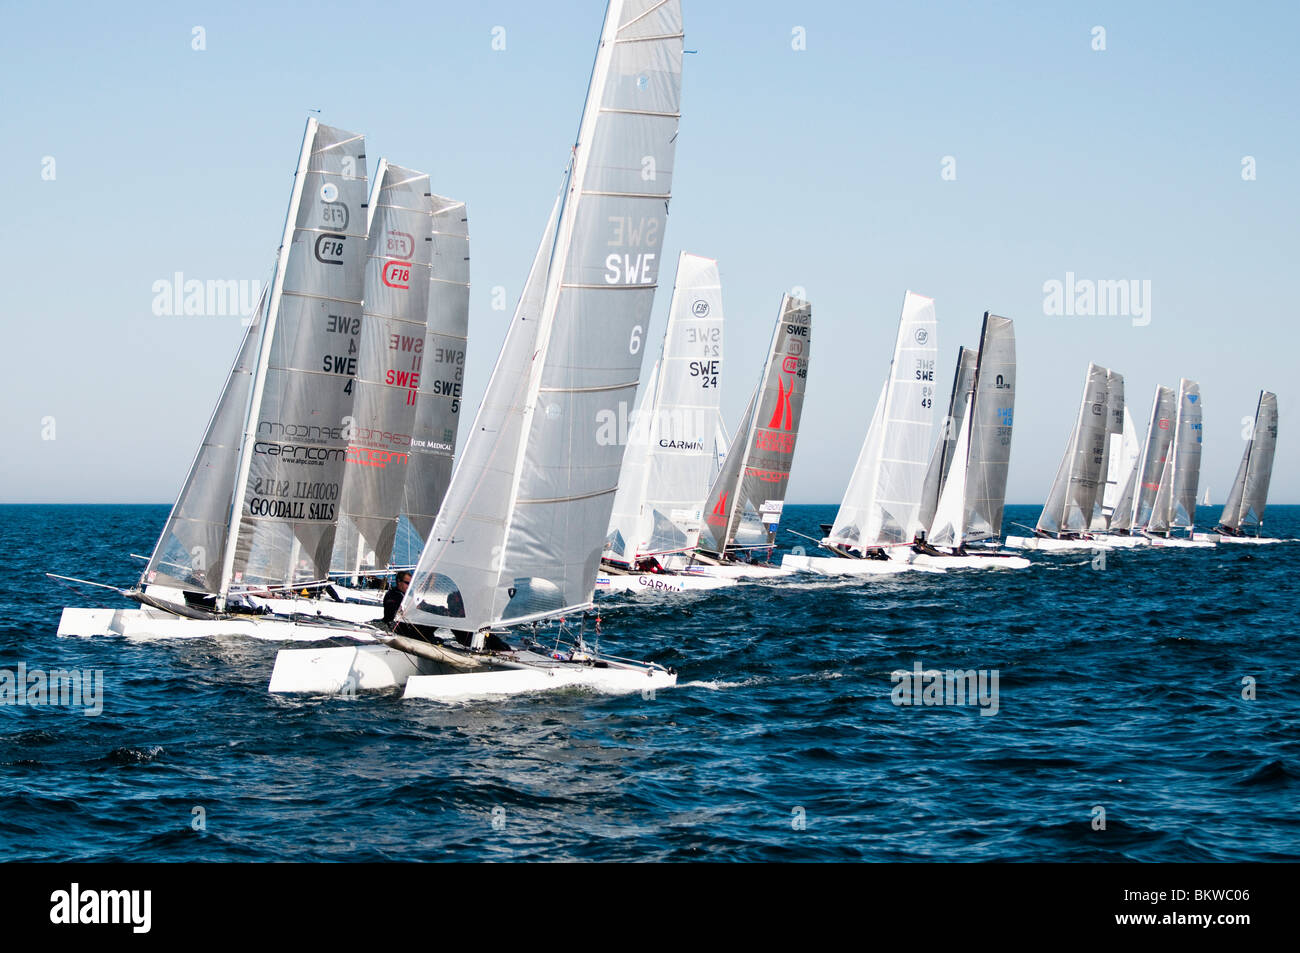 Sailboats in a row - Stock Image